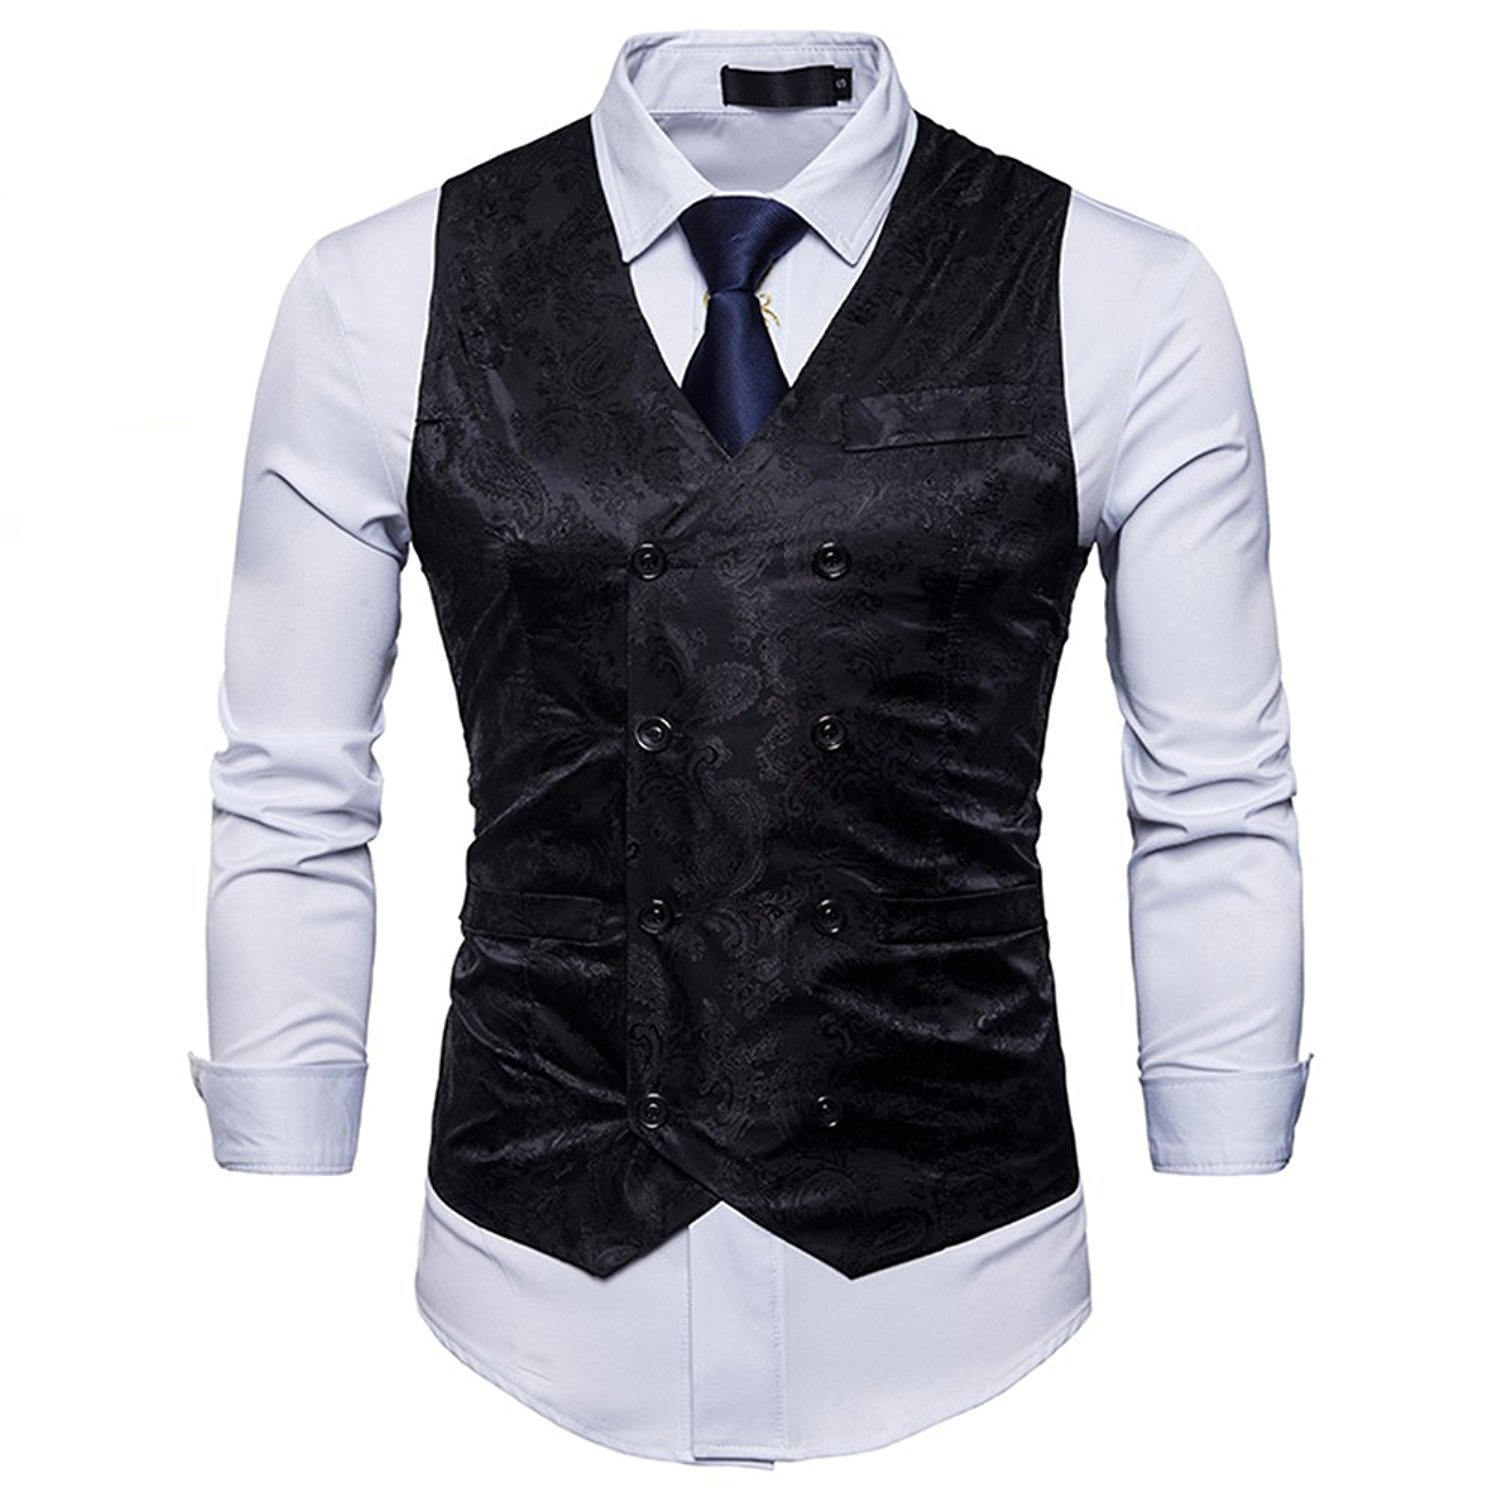 MAGE MALE Men's Vest Classic Fashion Double Breasted Waistcoat for Slim Fit Suit Or Tuxedo by MAGE MALE